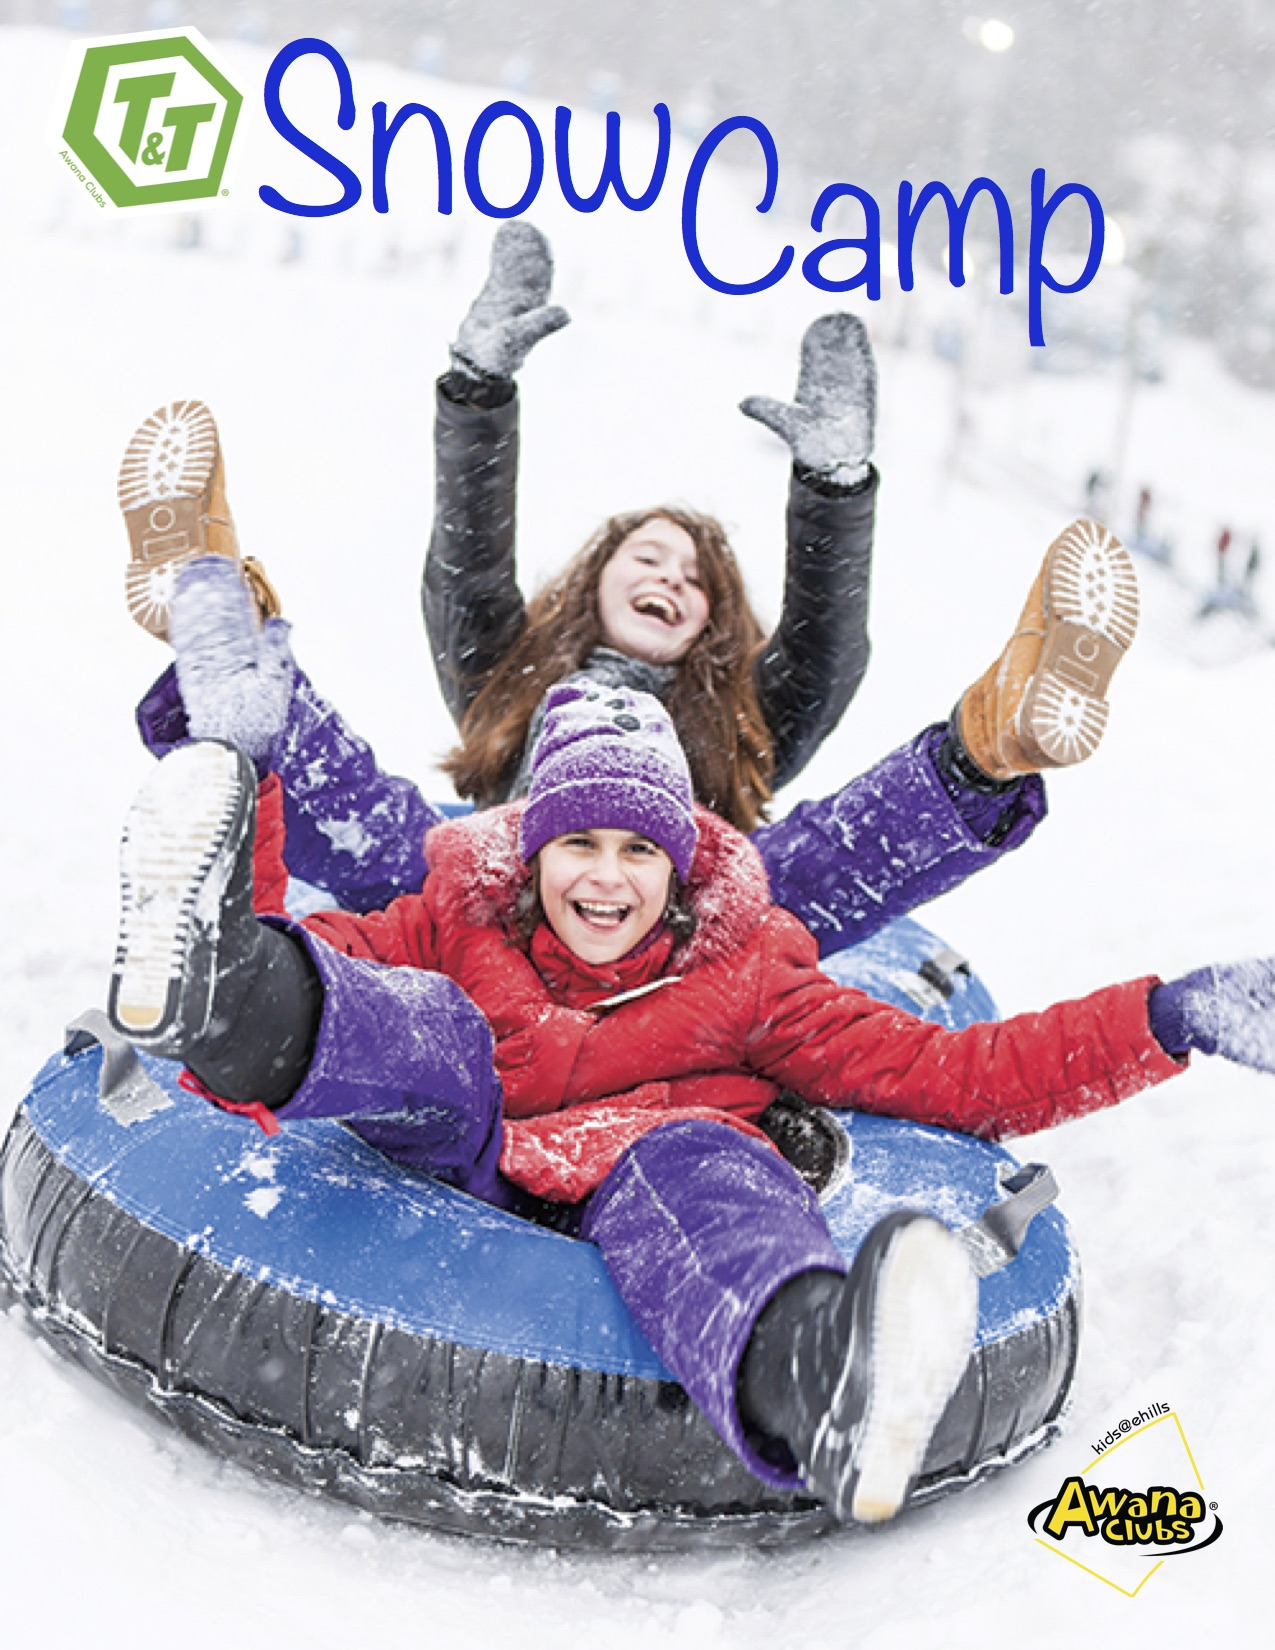 Snow camp graphic